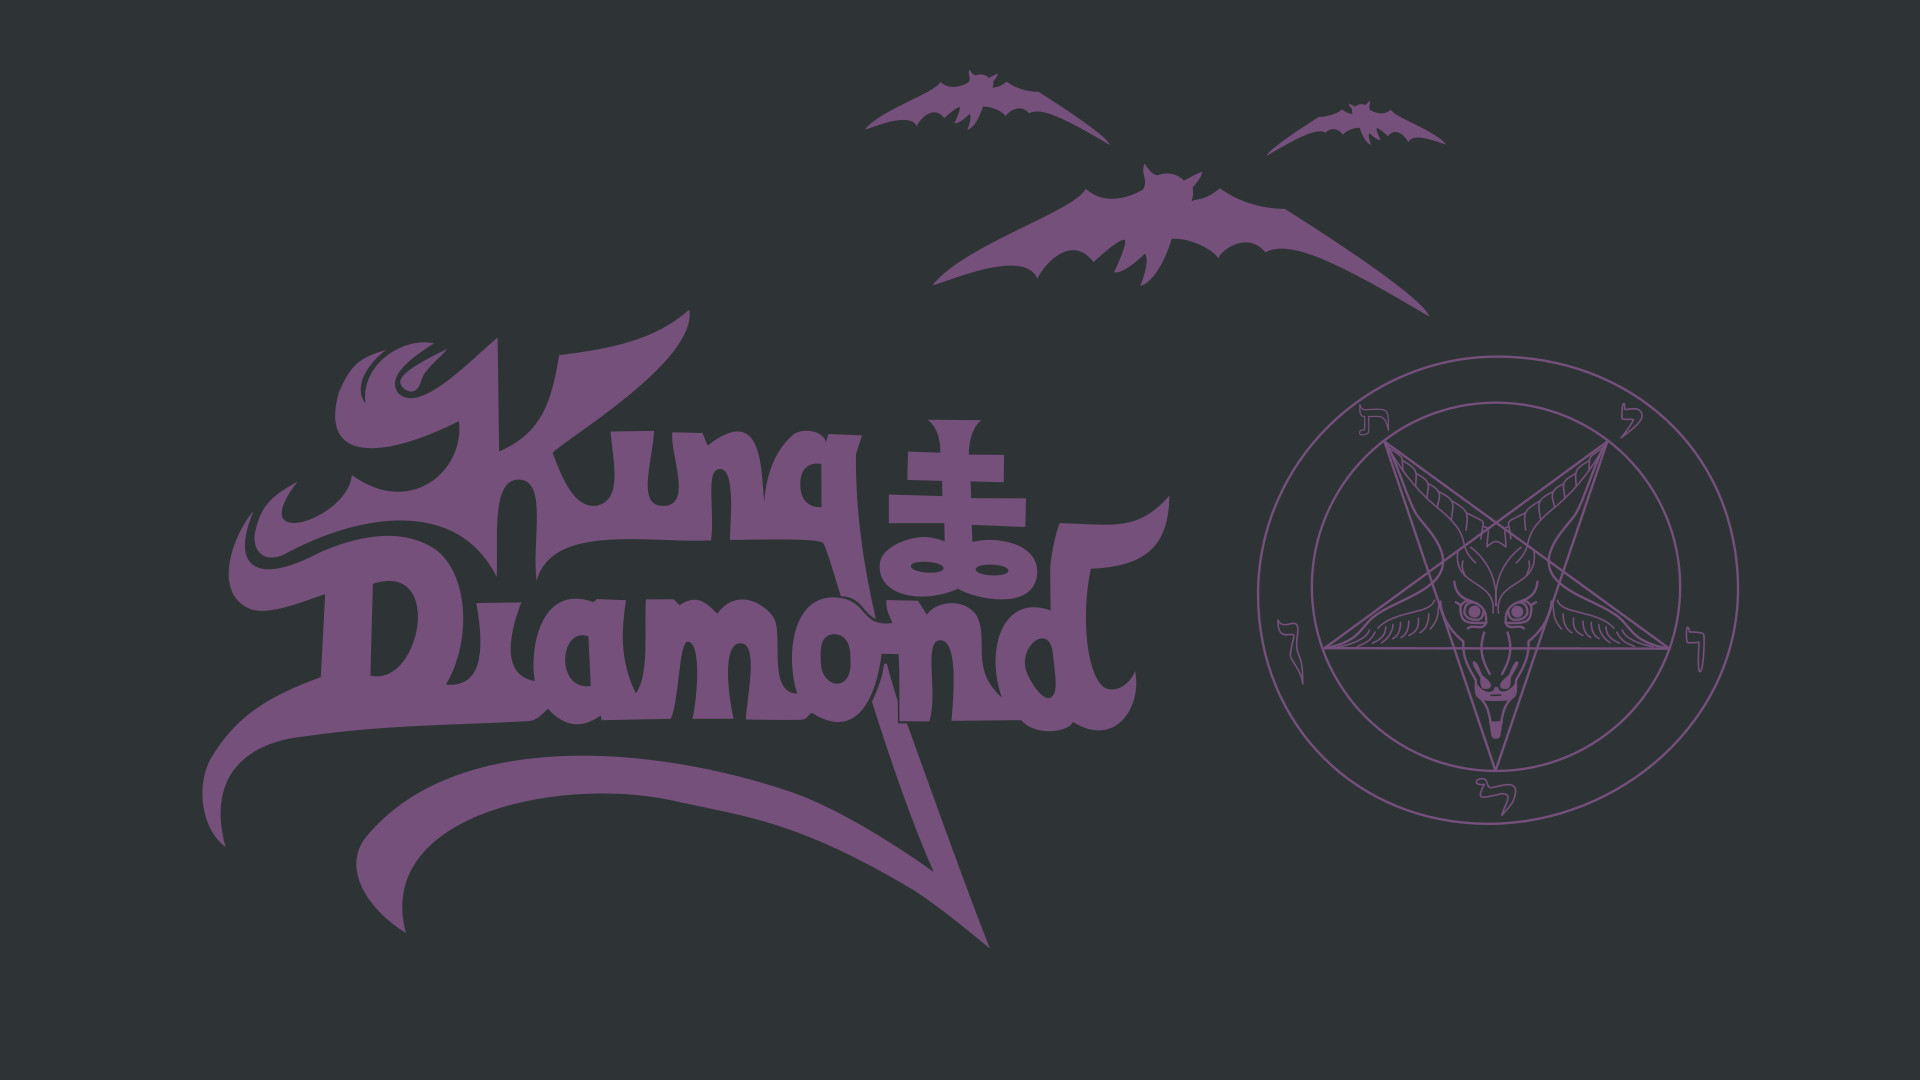 58 King Diamond Wallpapers On Wallpaperplay King Diamond Abigail